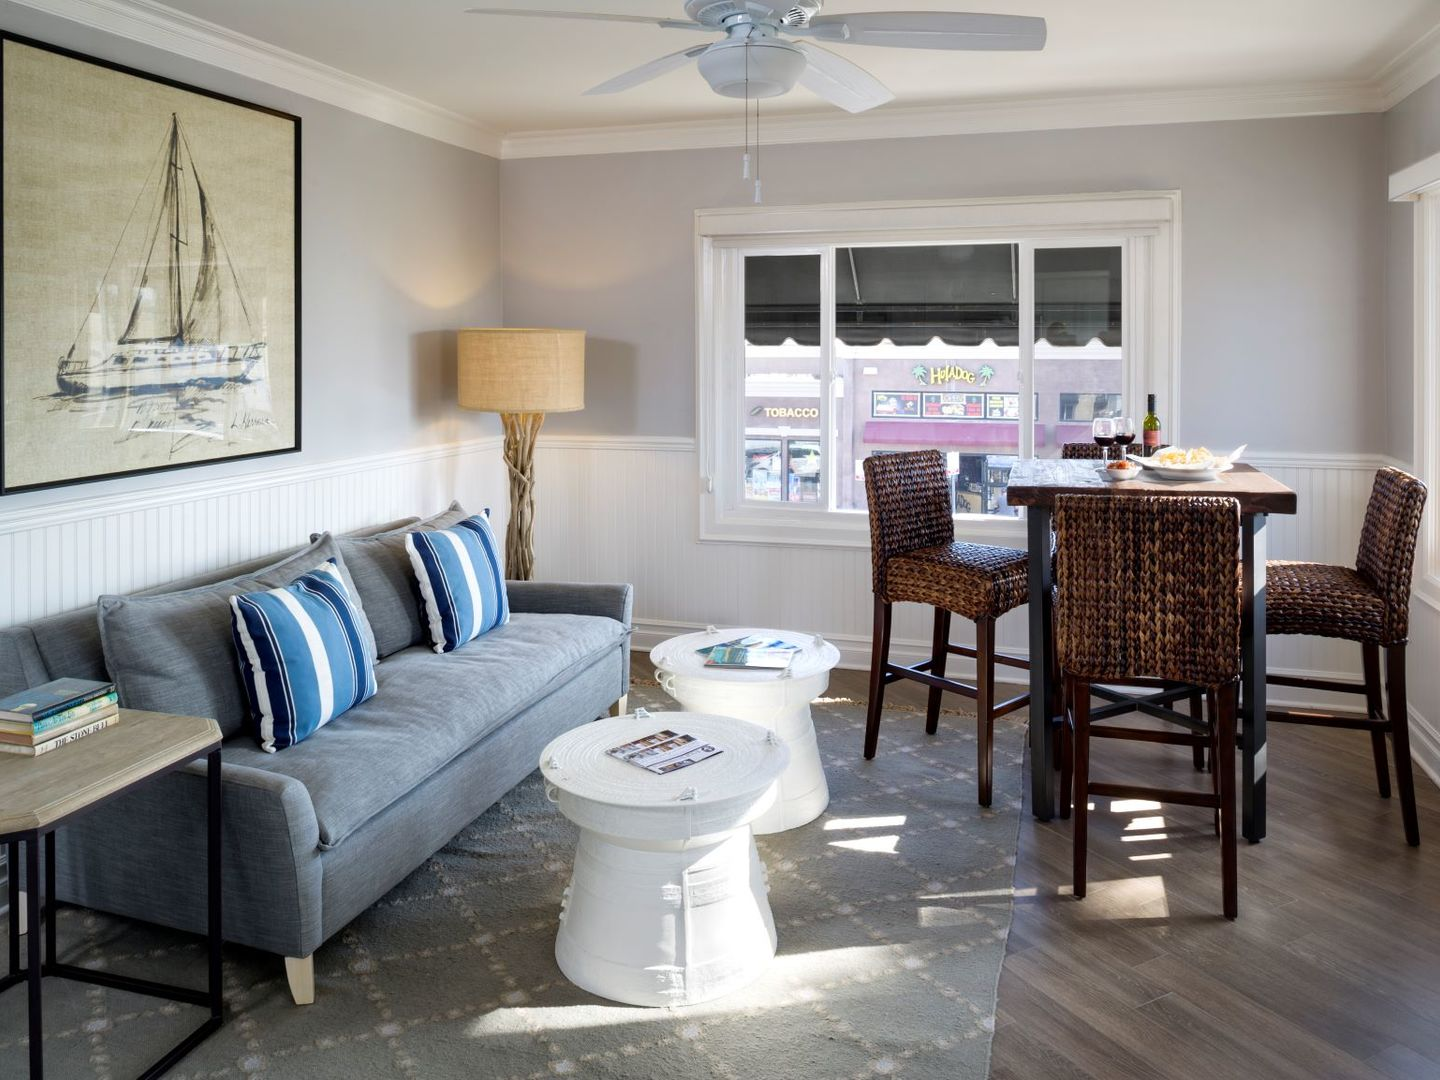 A living room filled with furniture and a large window at Newport Beach Hotel, A Four Sisters Inn.